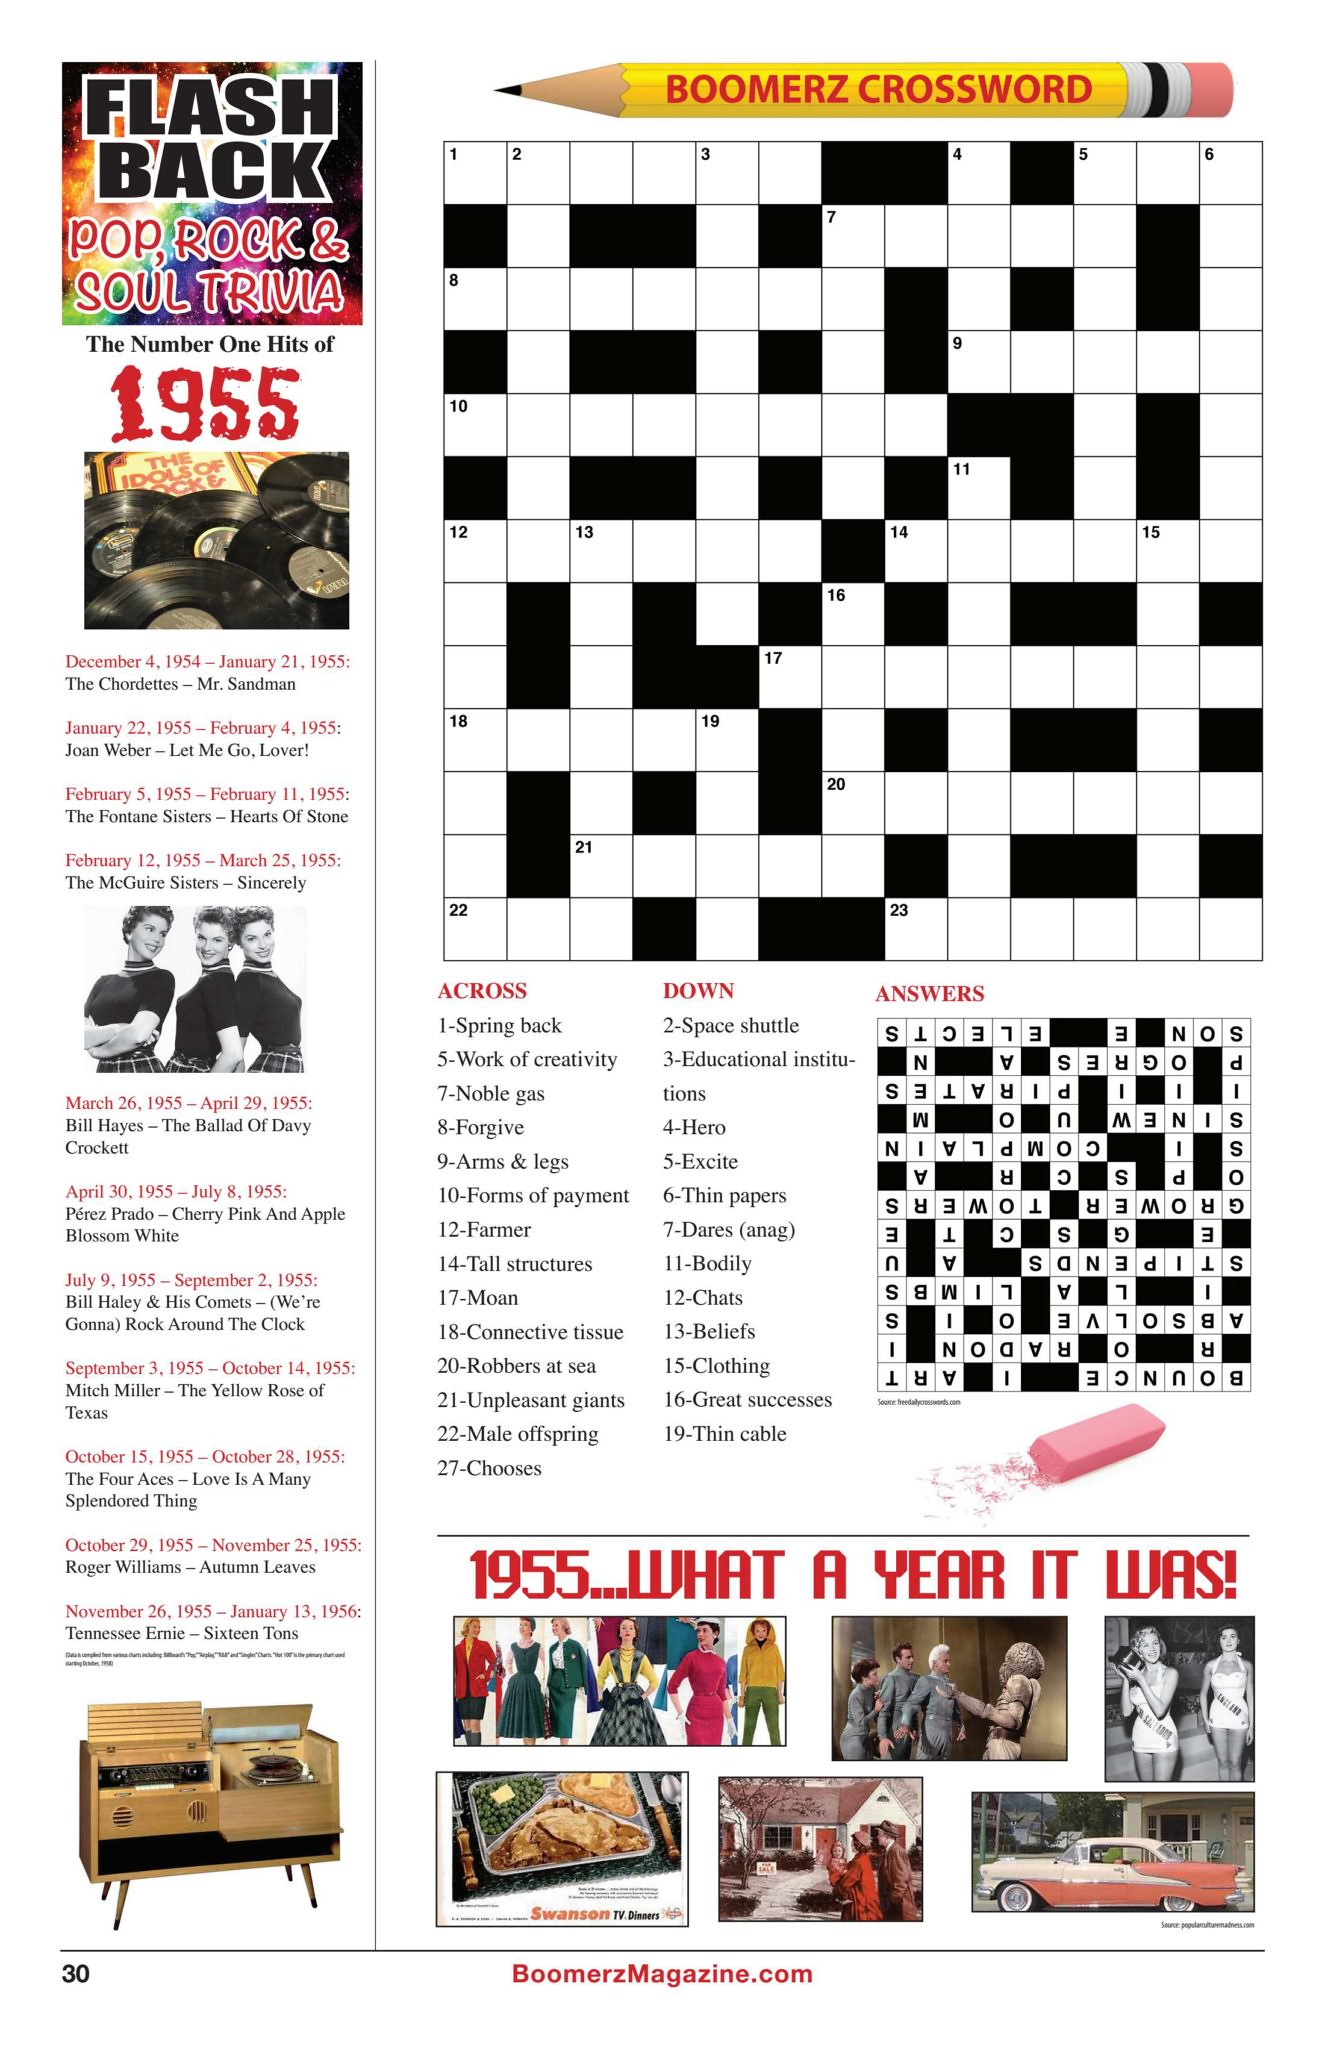 Boomerz Magazine 2018 November Flash Back Pop, Rock & Soul Trivia Crossword Puzzle